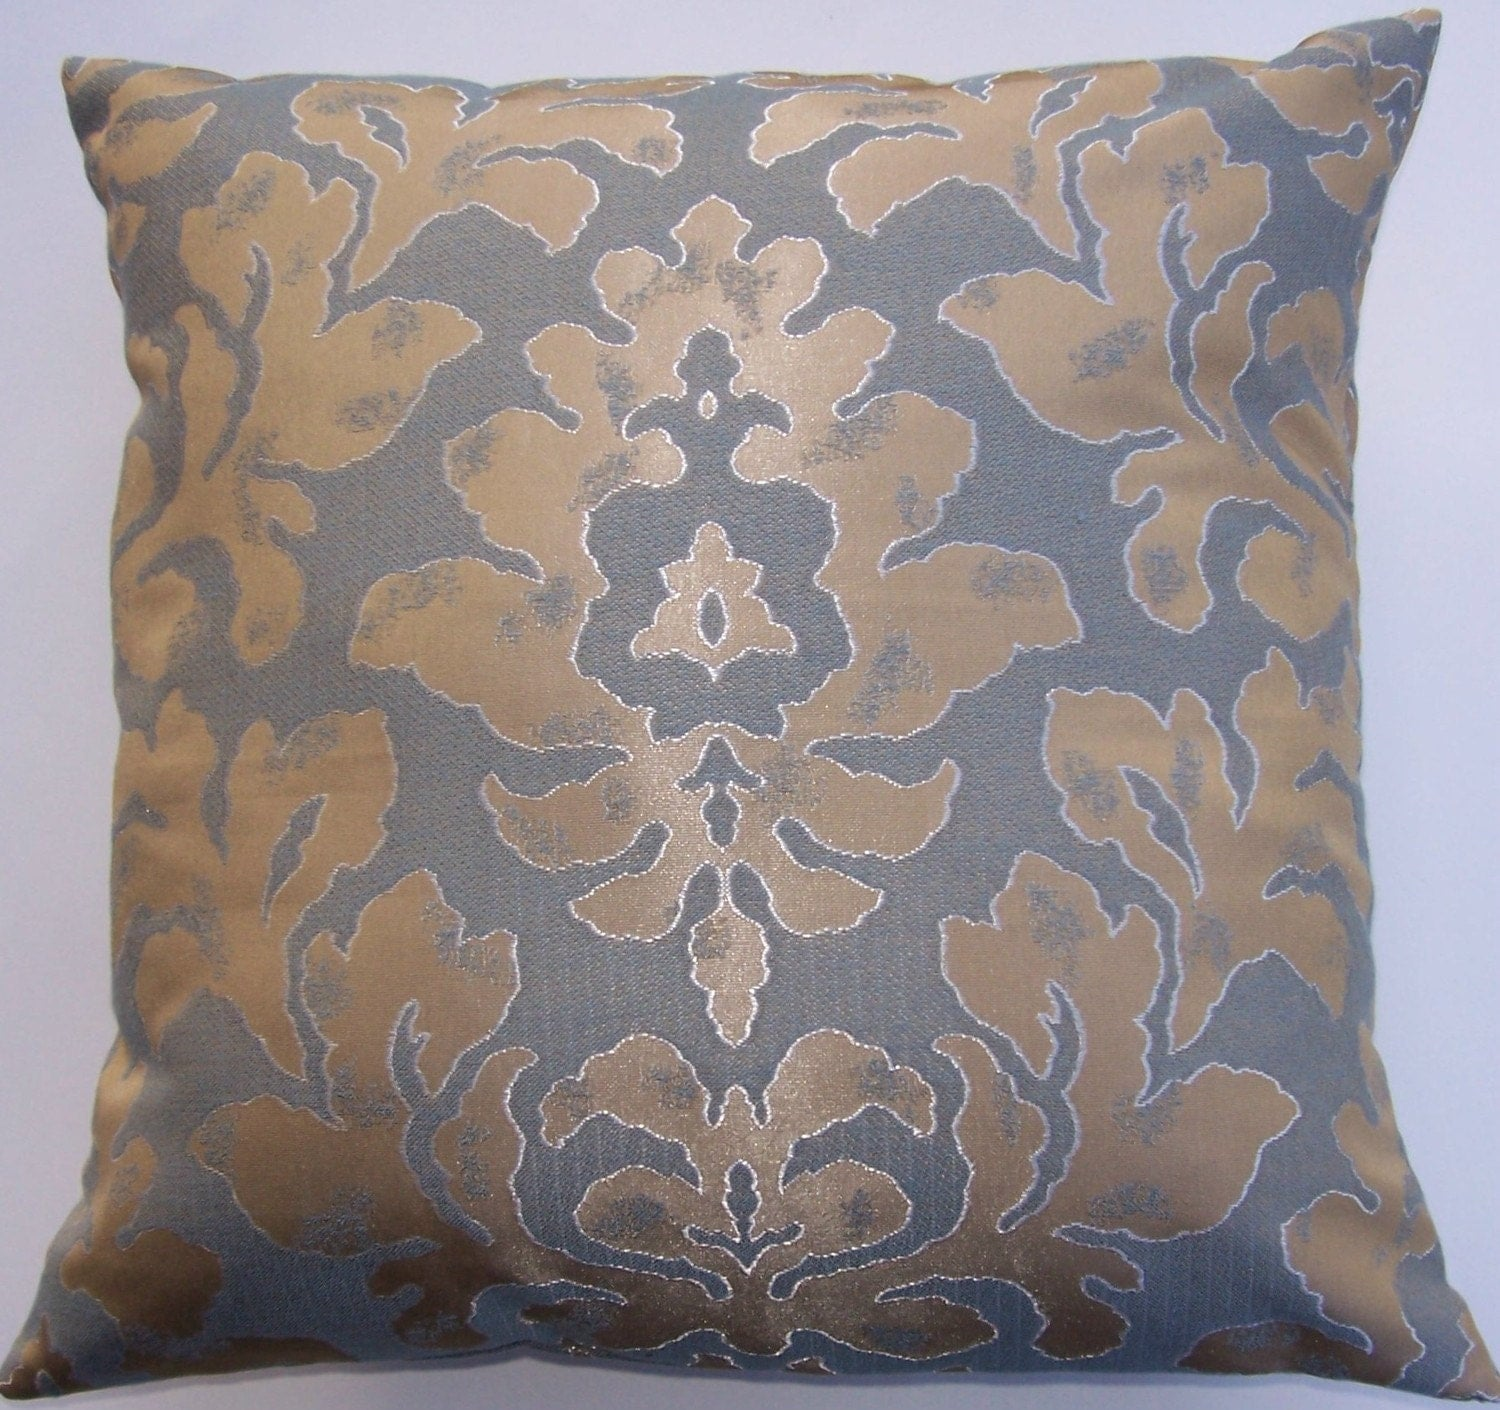 Silver and Gold Damask Throw Pillow Cover 16 x 16